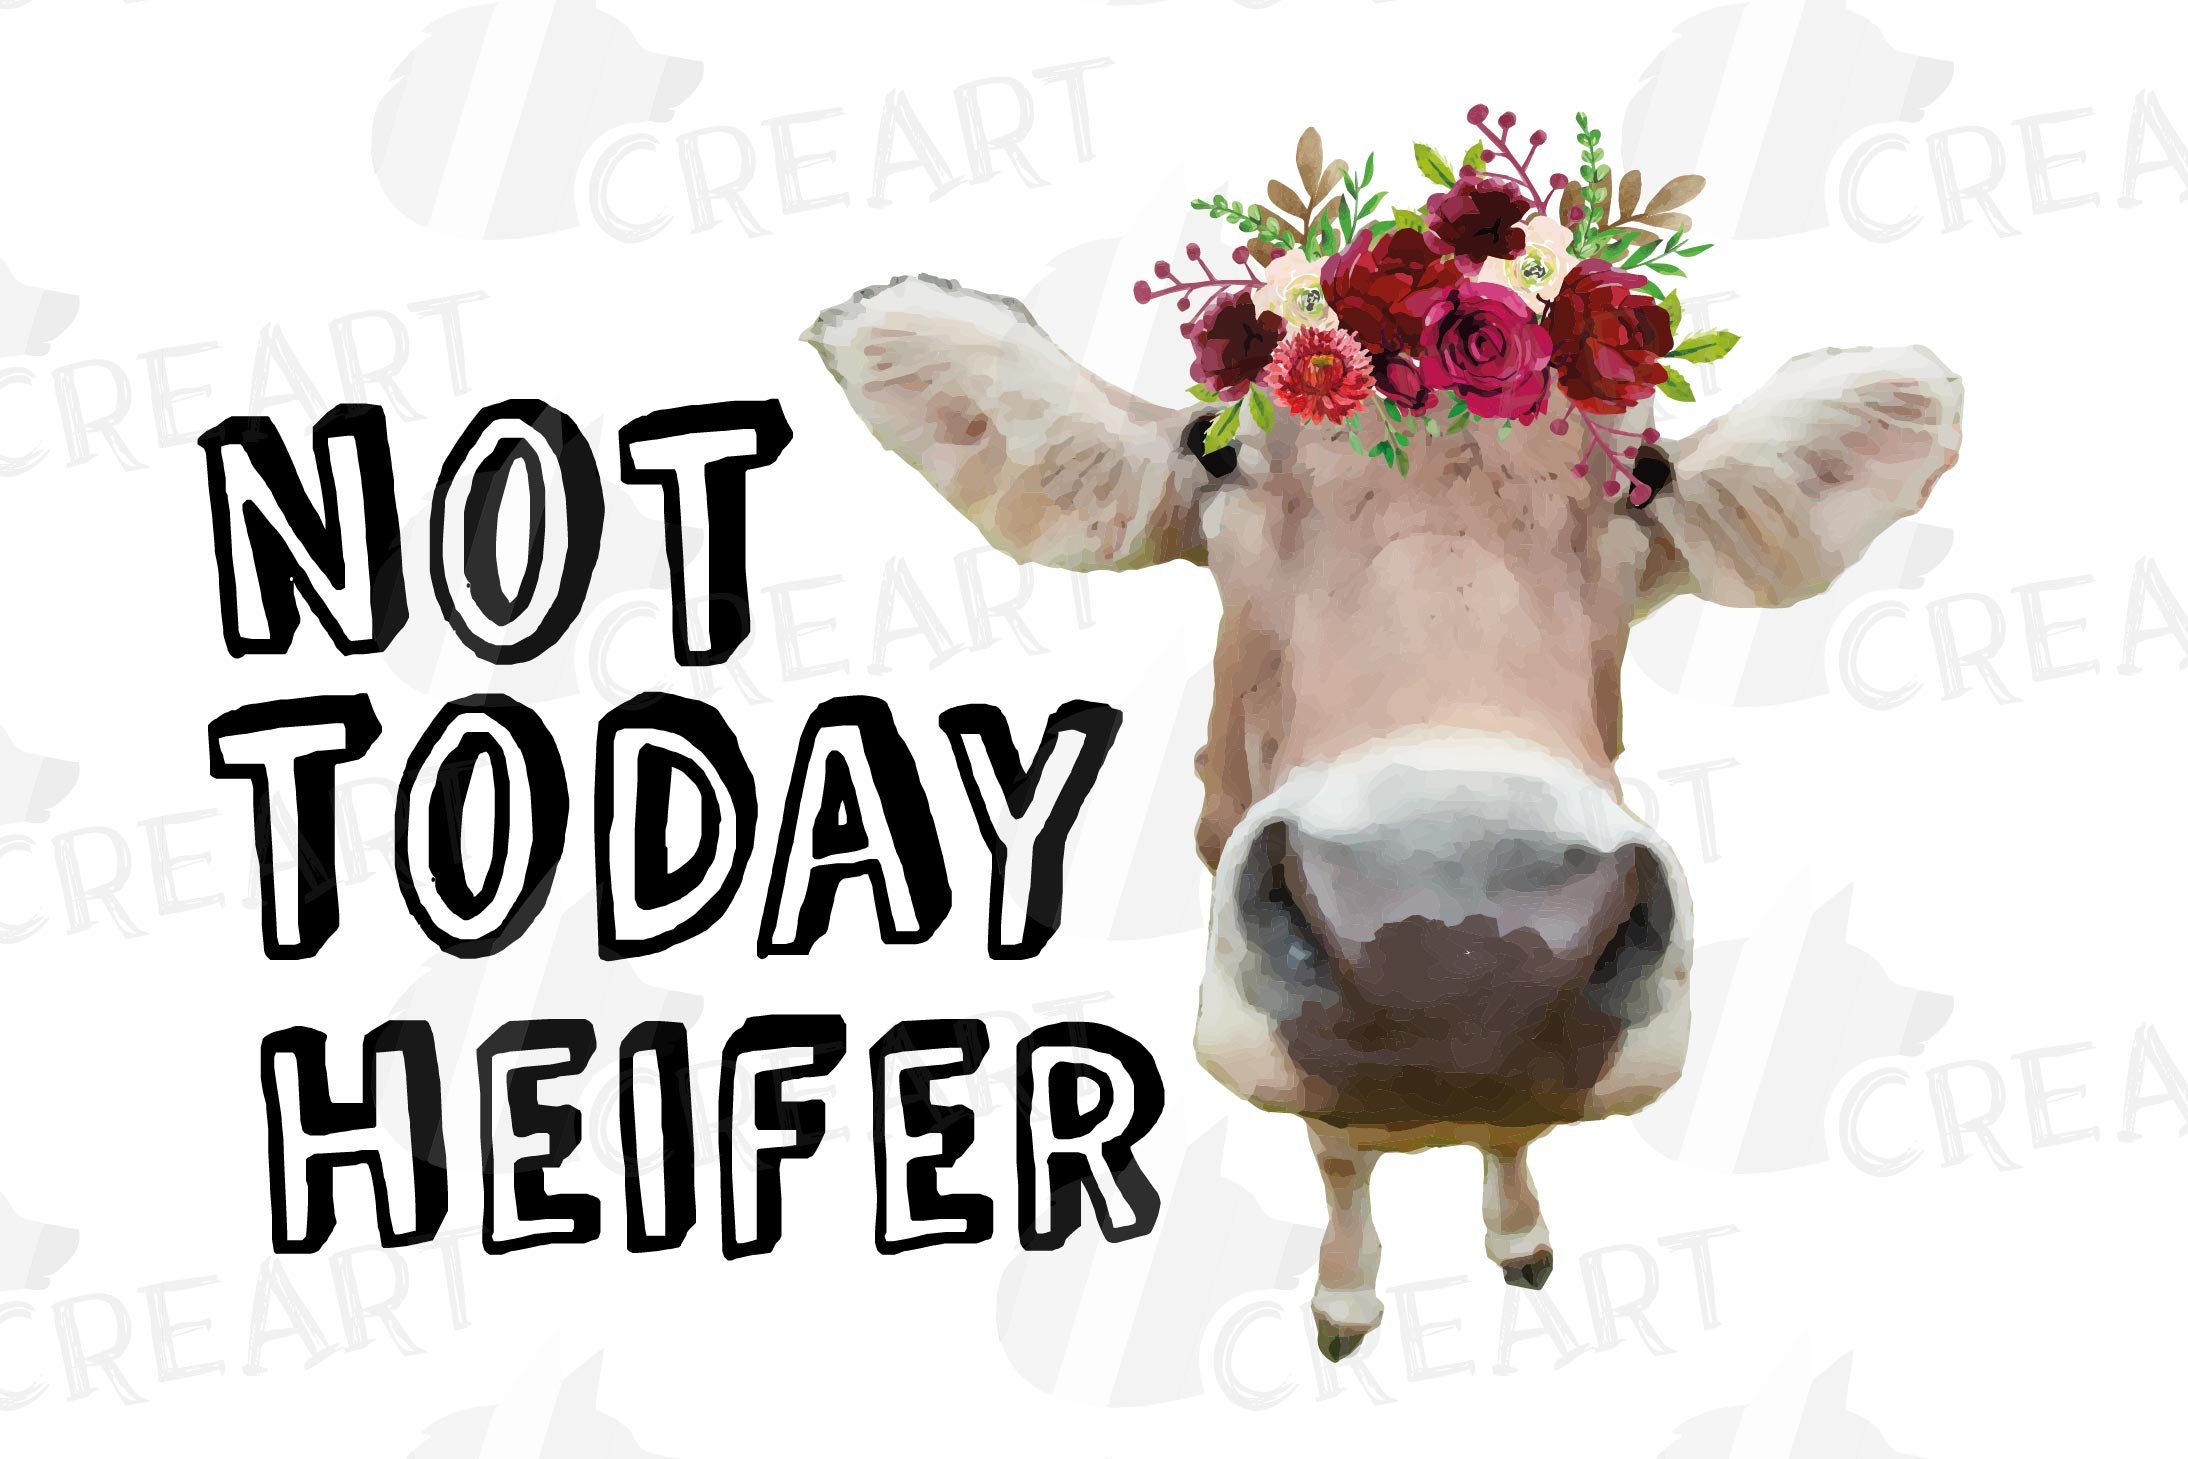 Not today Heifer printable floral burgundy decor, floral cow example image 15